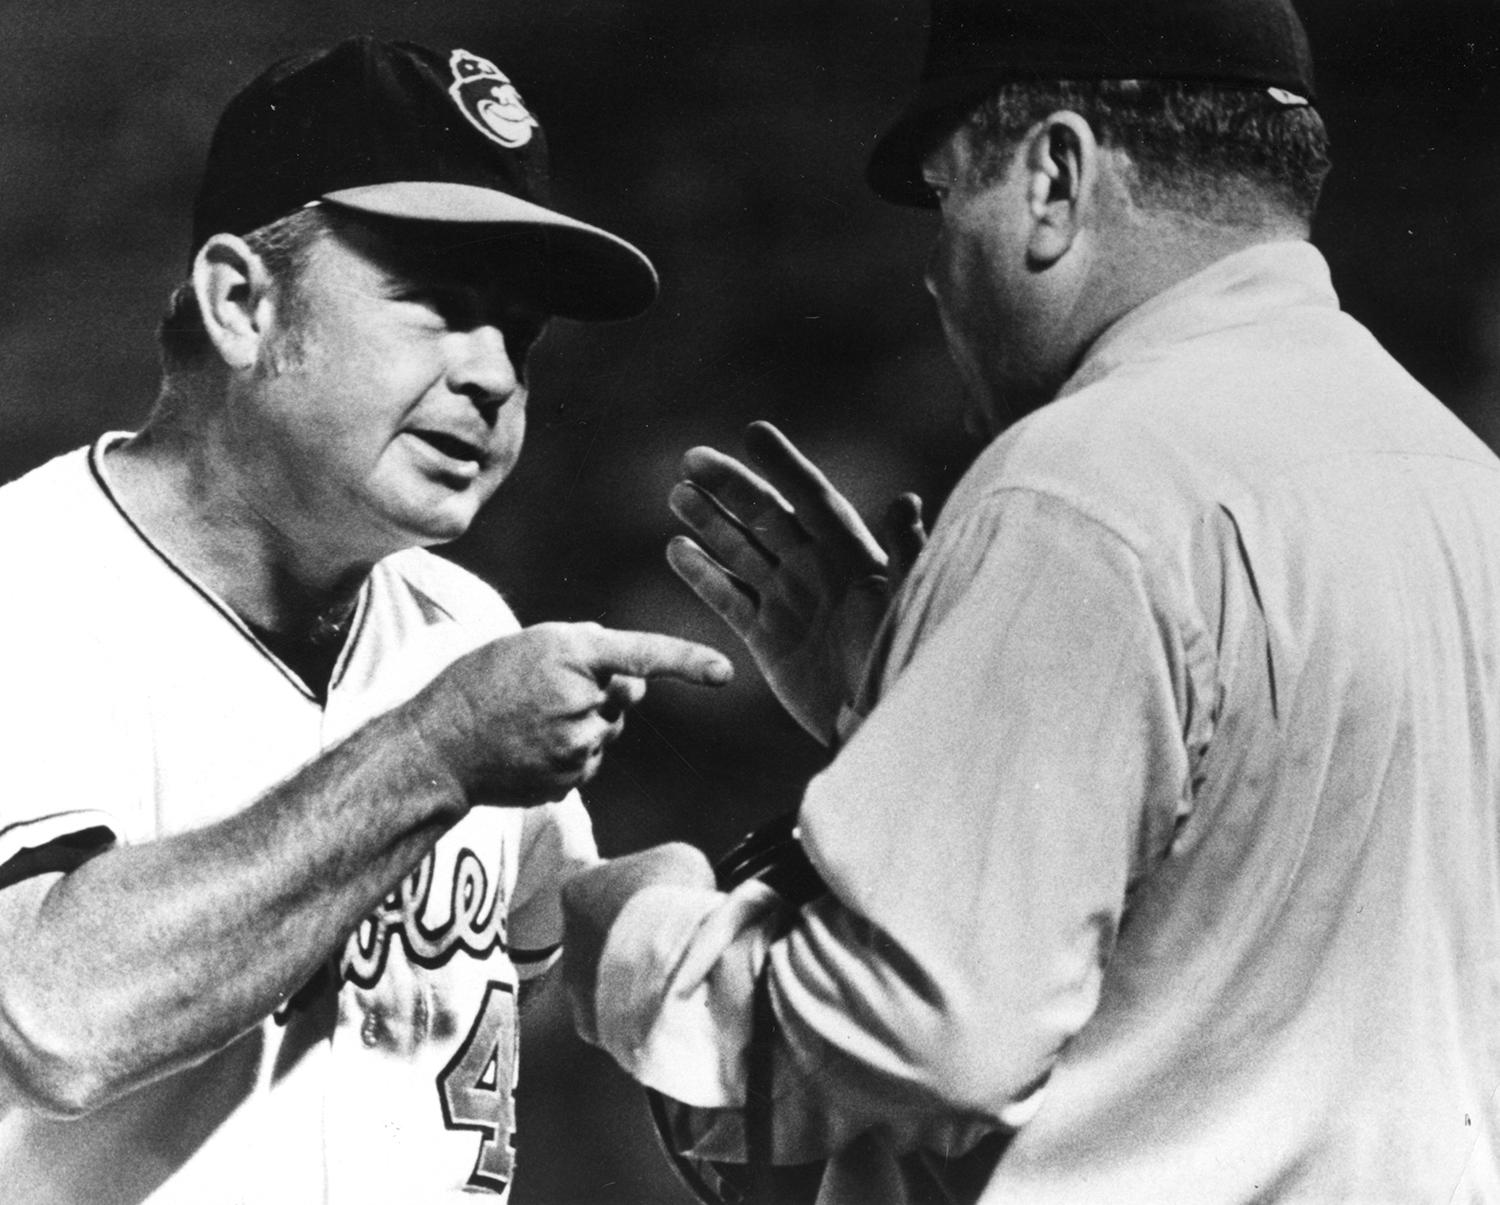 Earl Weaver led Baltimore to 48 wins of its 82 games in his first season as manager. (National Baseball Hall of Fame and Museum)